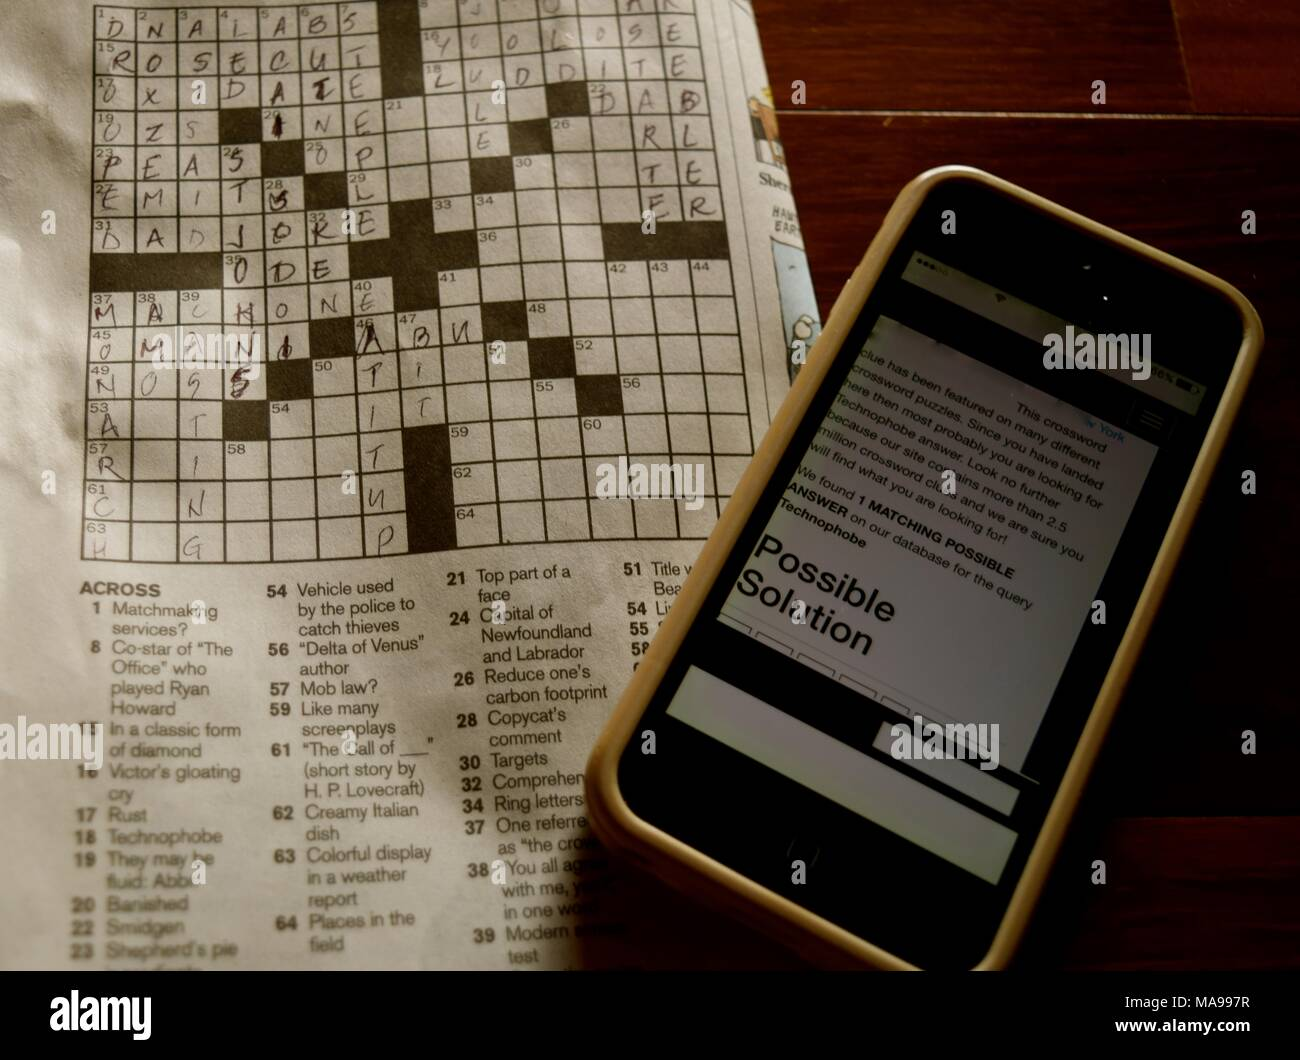 To Solve The Daily Crossword Puzzle I Use My Smartphone For